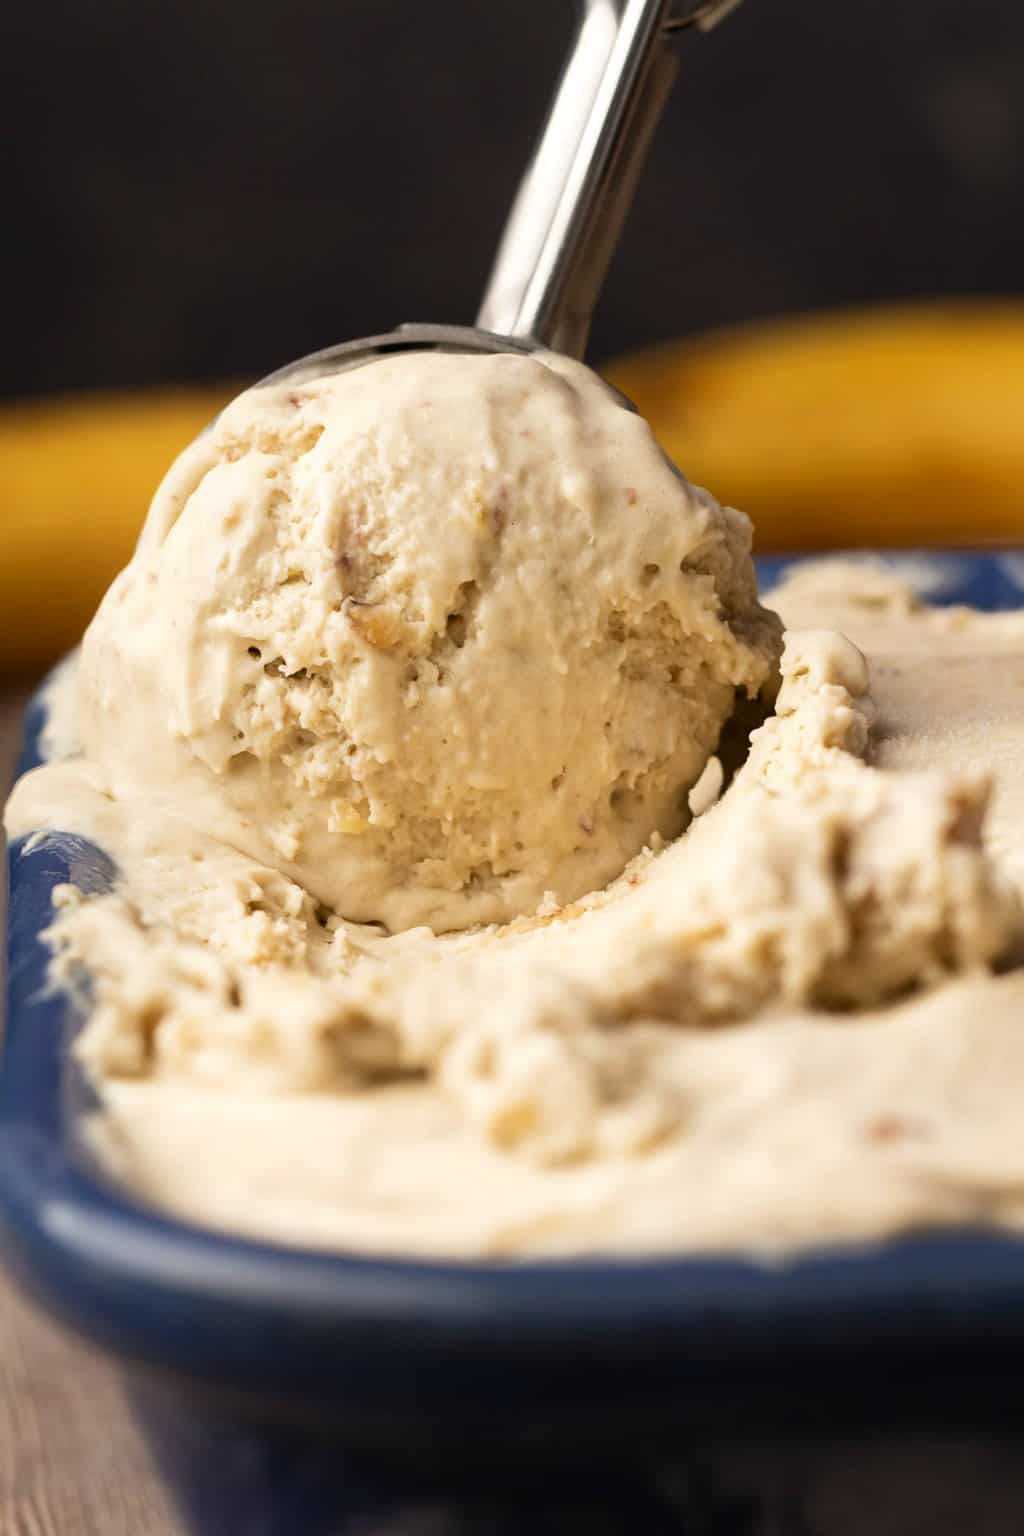 Vegan Banana Ice Cream